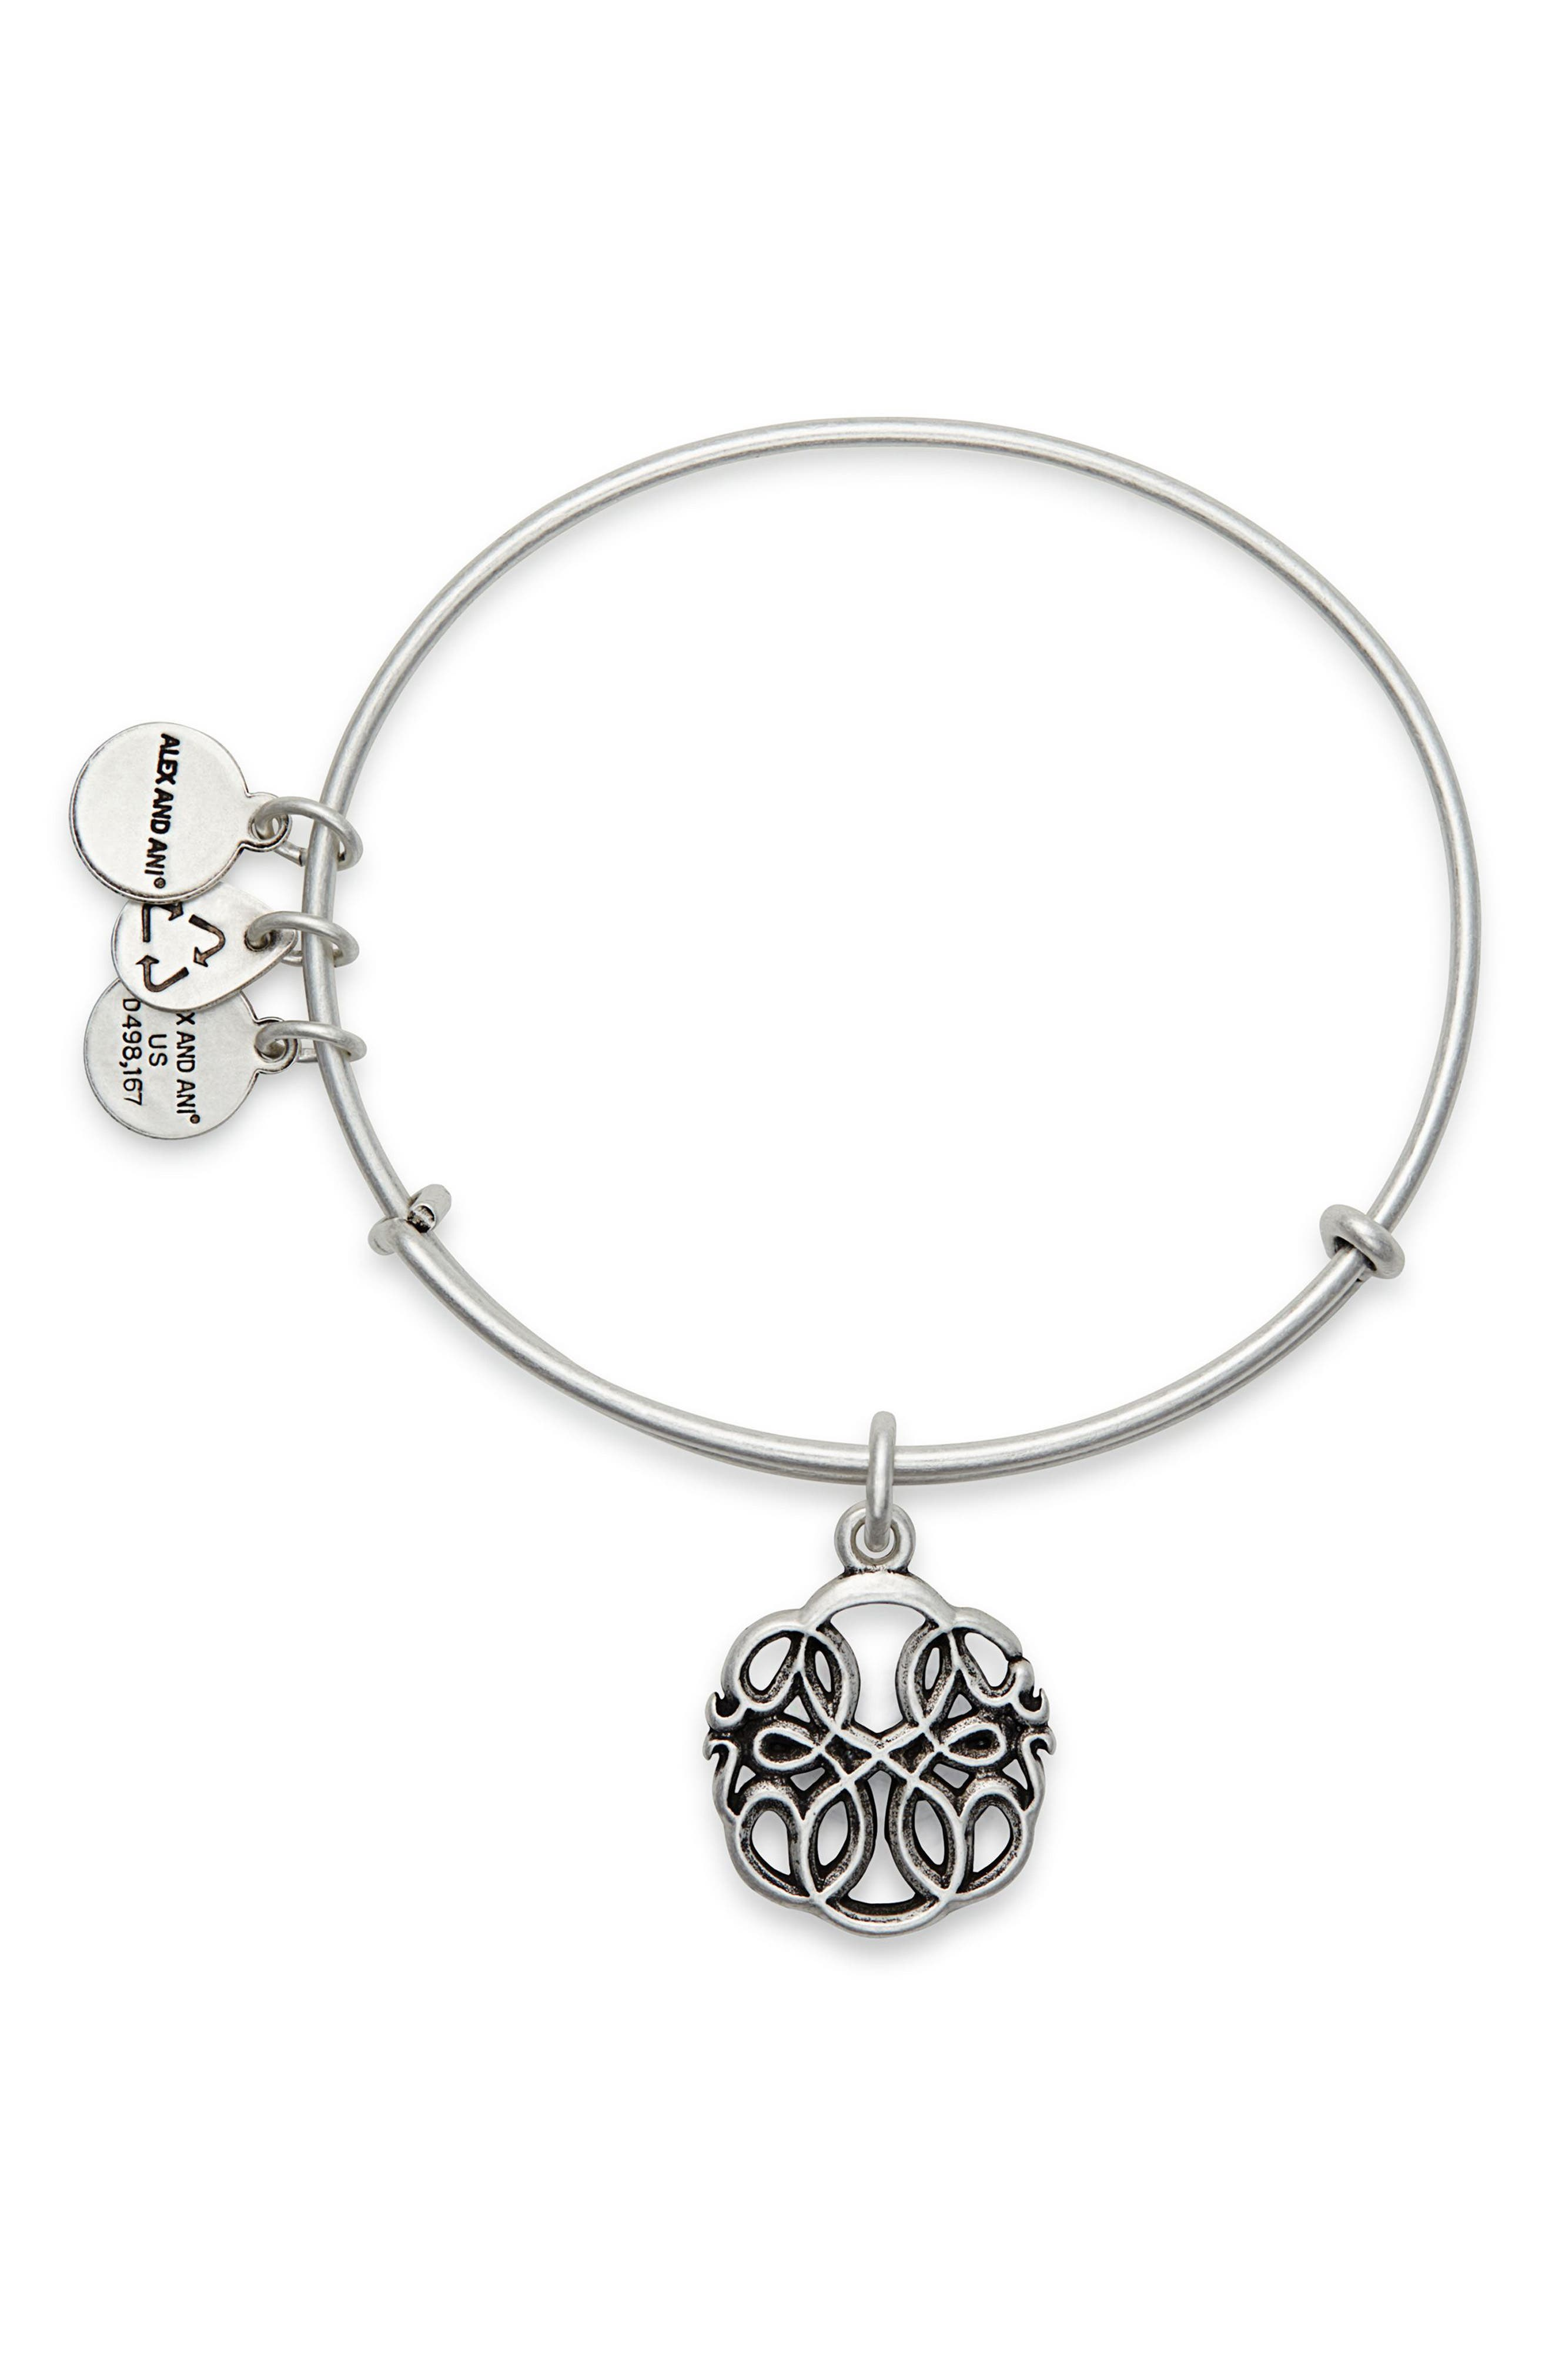 Path of Life Adjustable Wire Bangle,                             Alternate thumbnail 2, color,                             RUSSIAN SILVER